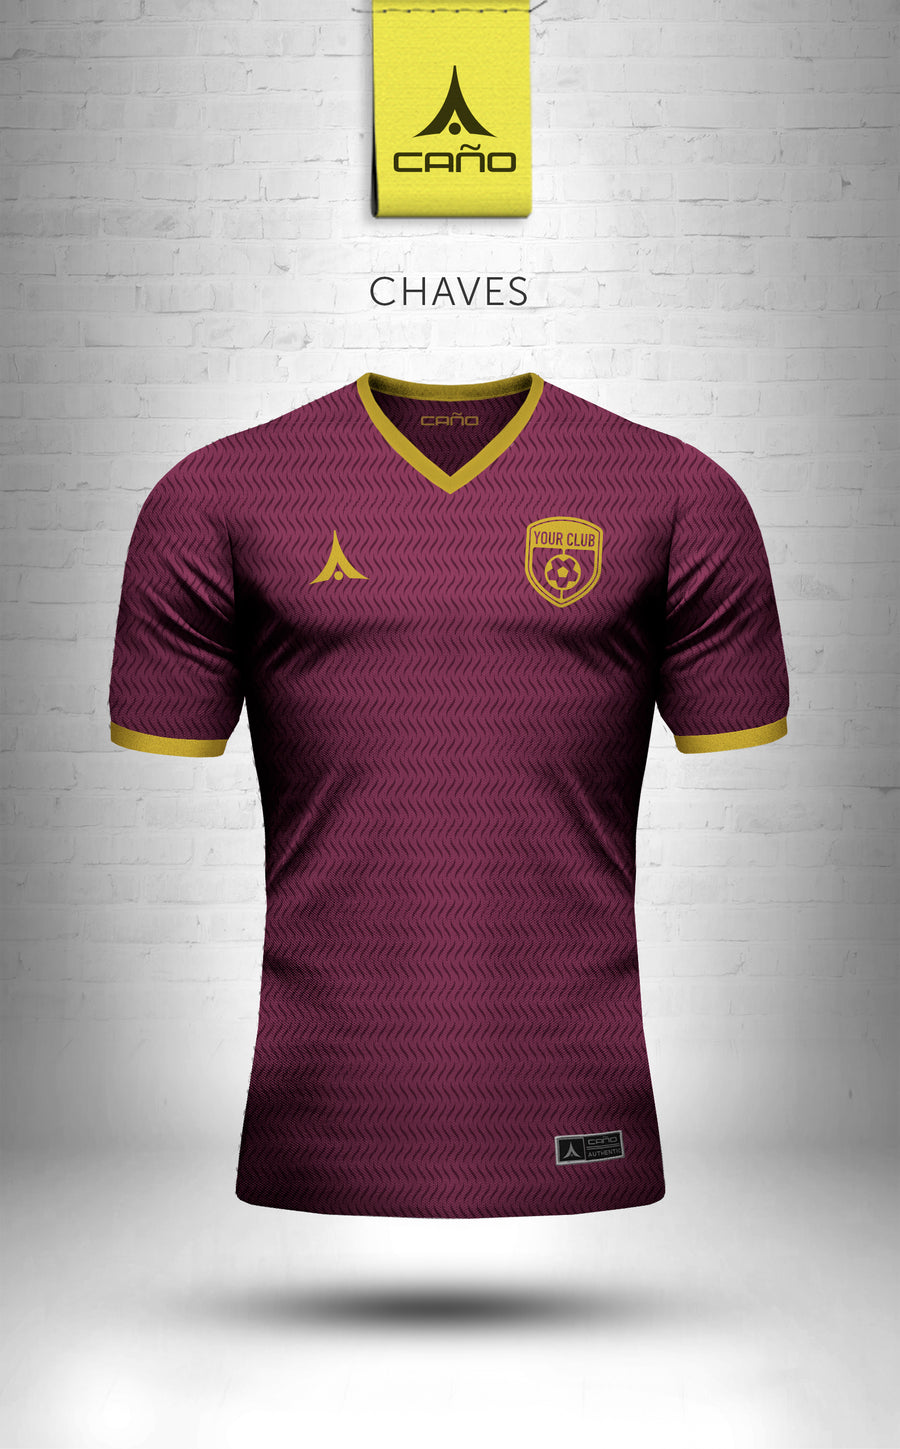 Chaves in maroon/gold